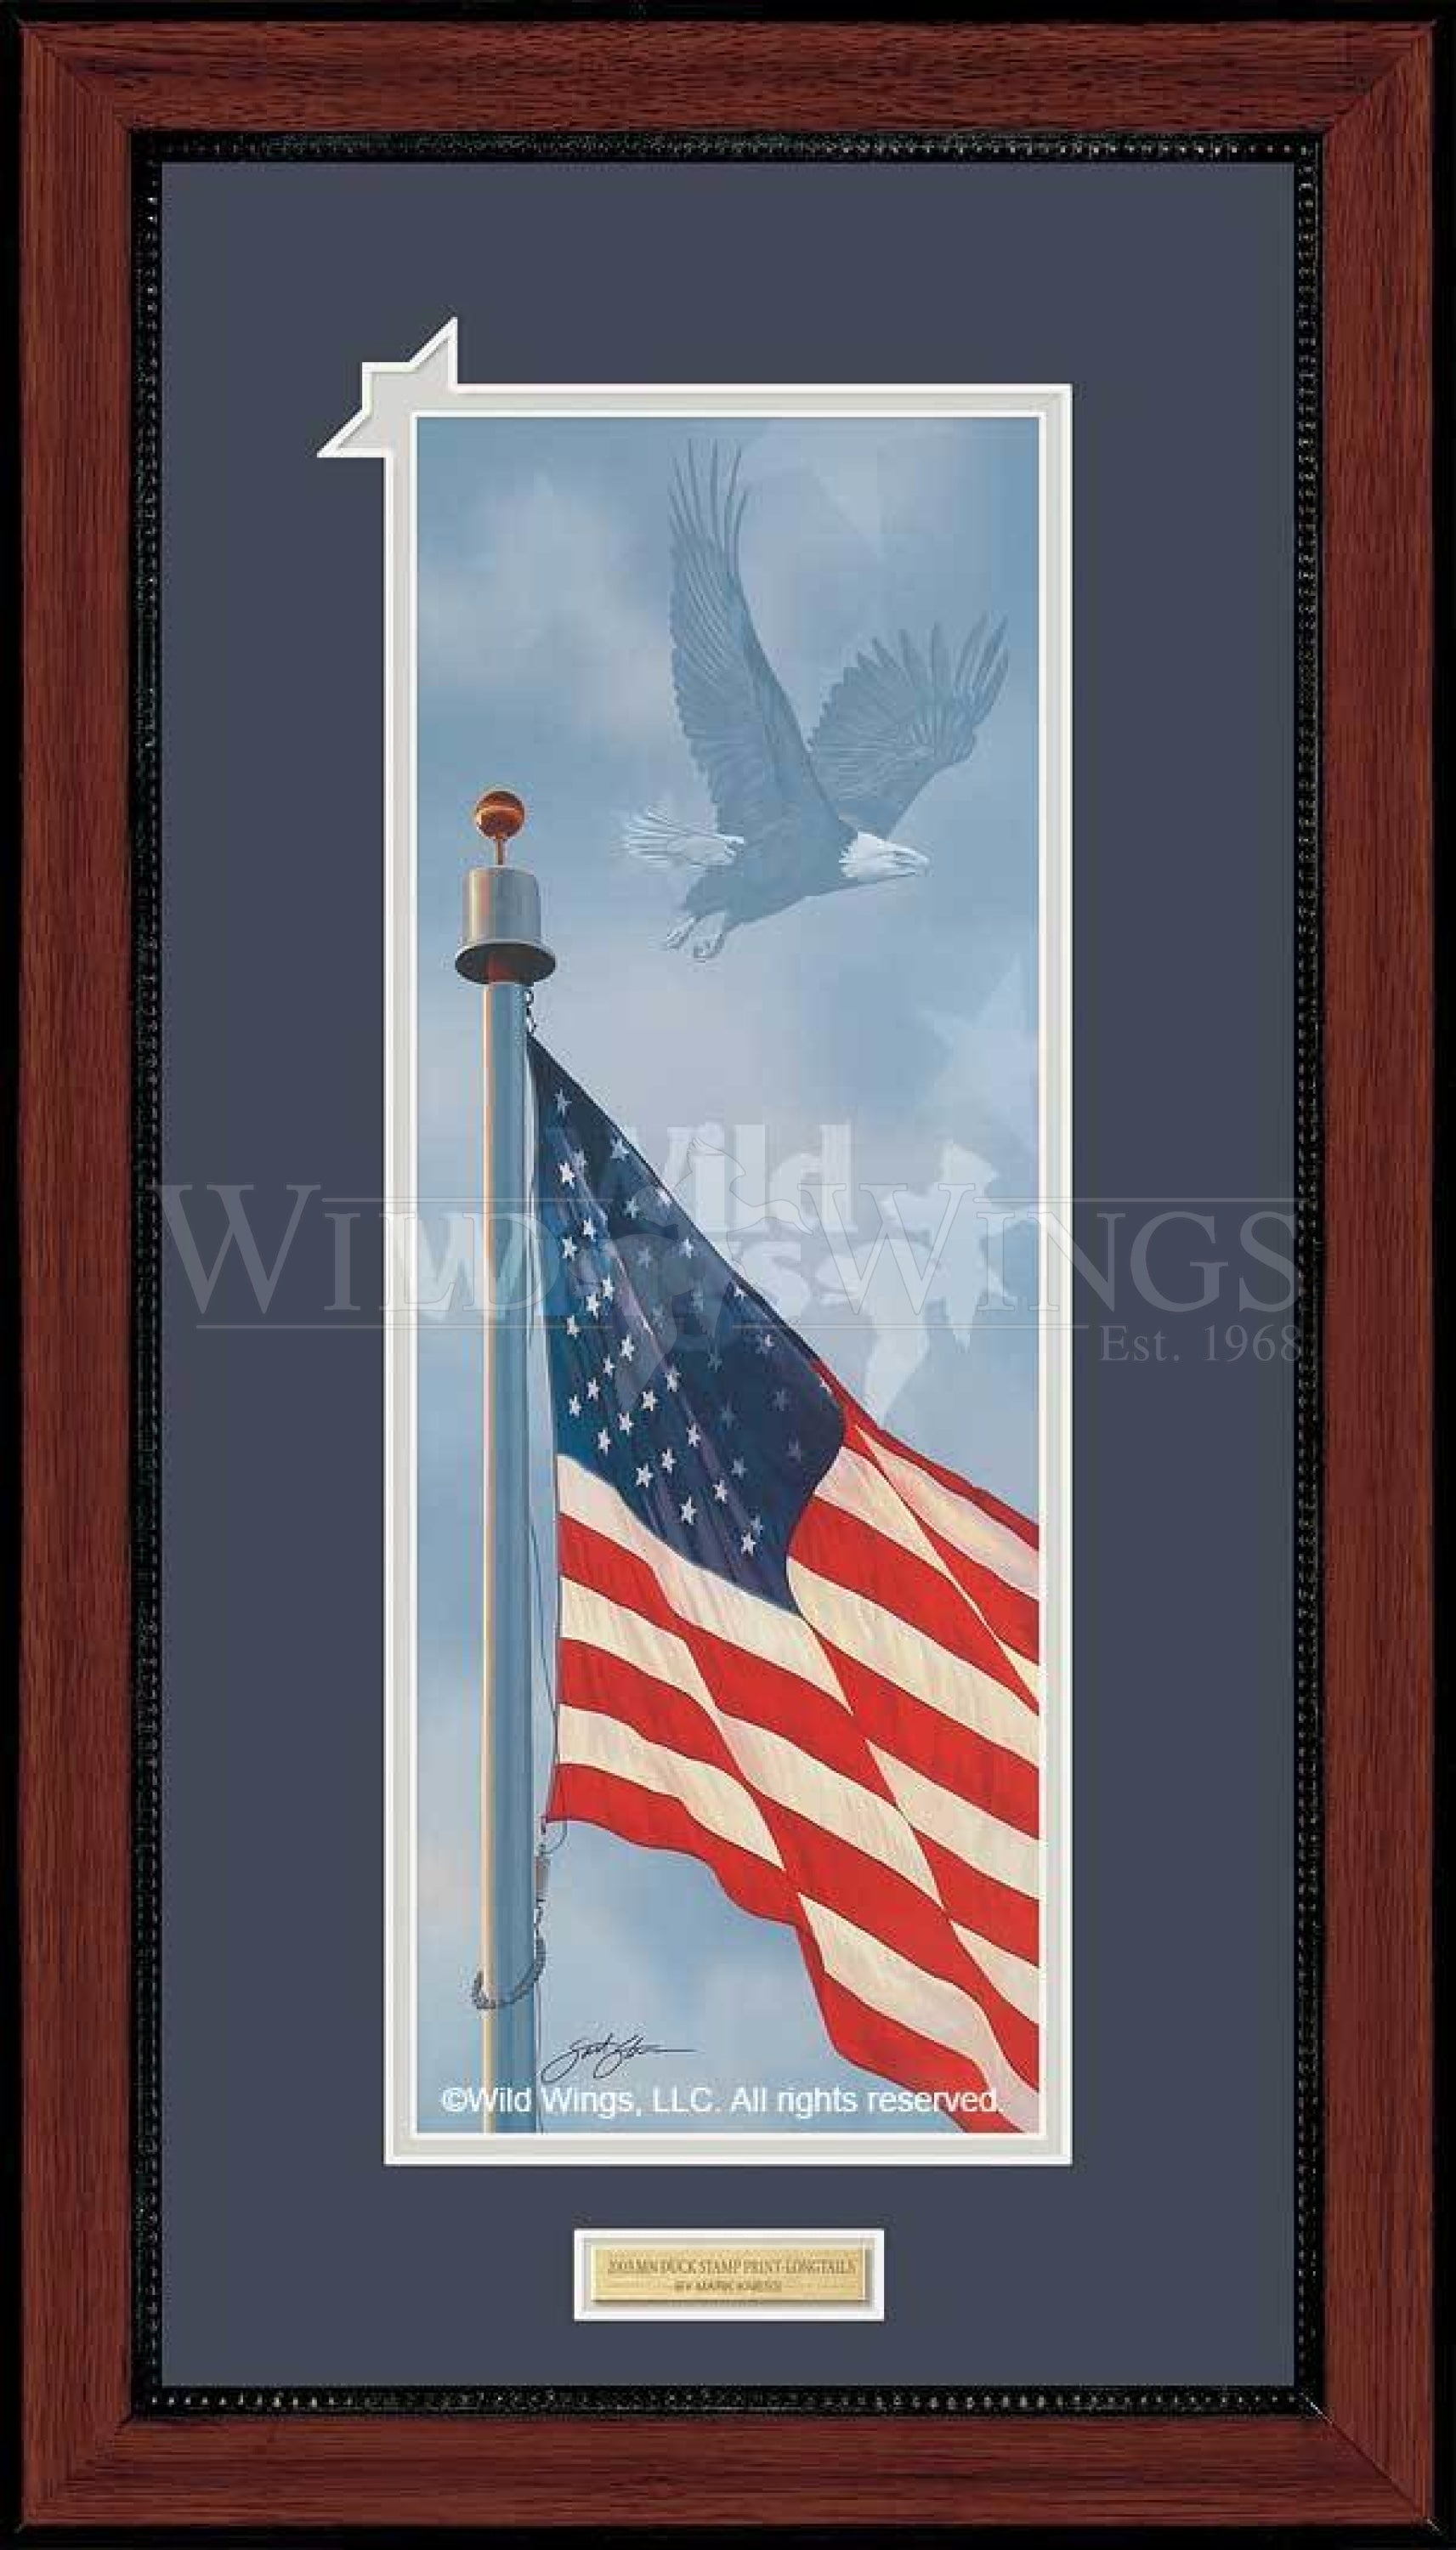 <i>Spirit of America&mdash;Bald Eagle</i>